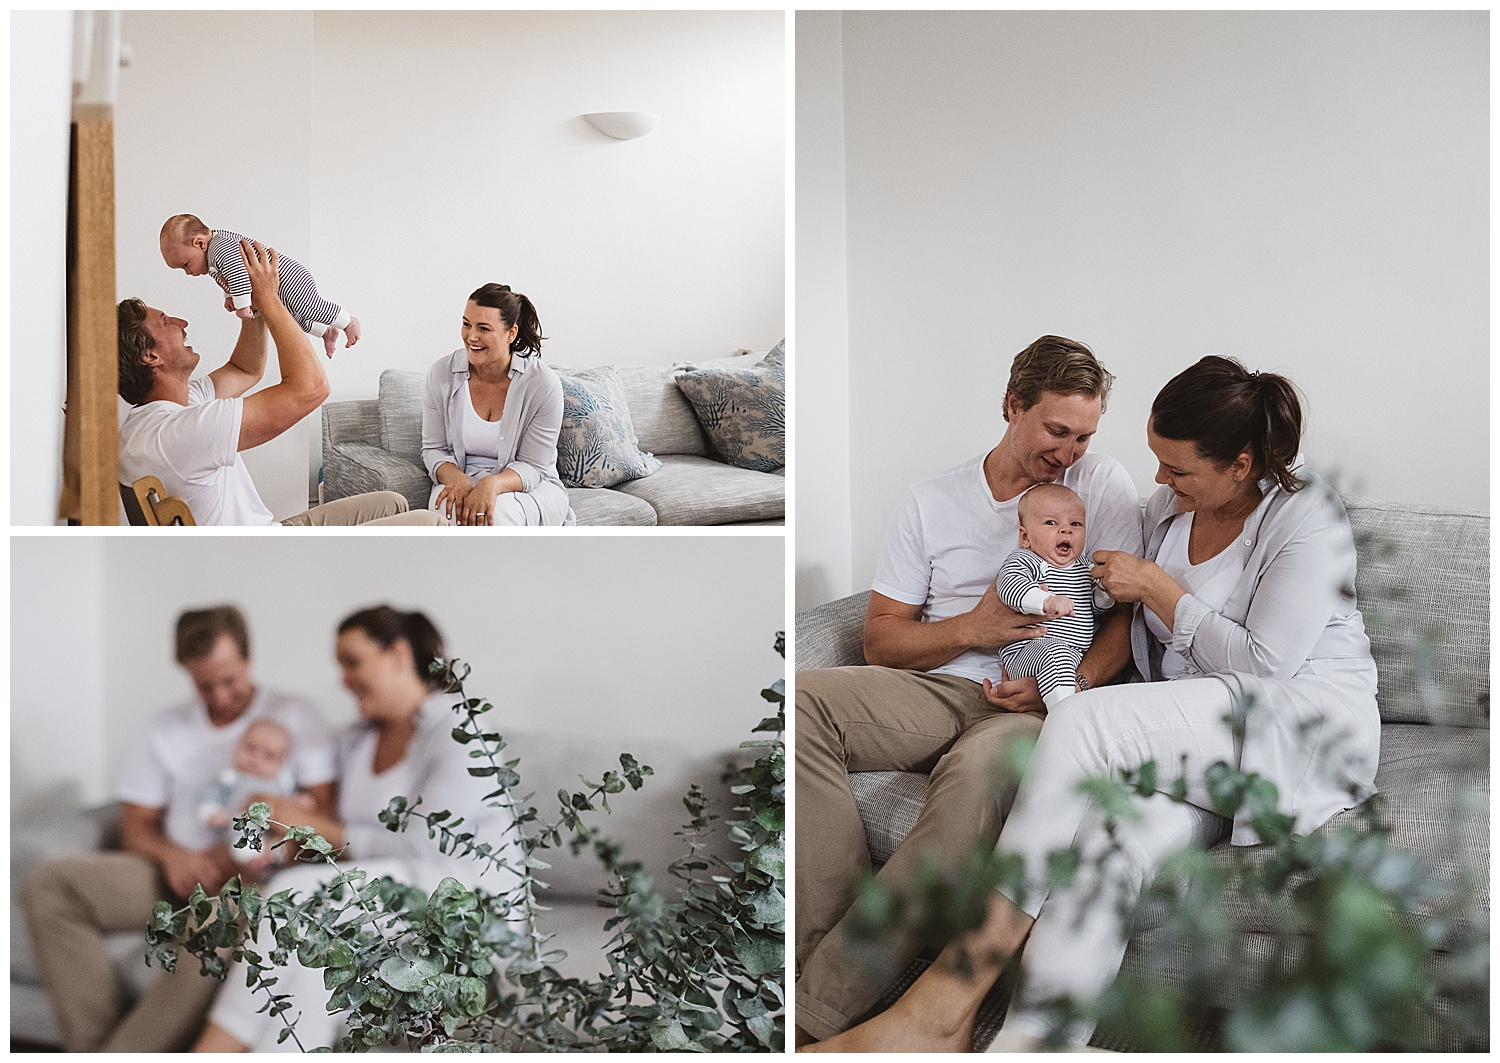 Moorabbin lifestyle newborn photography and family photography for babies and children